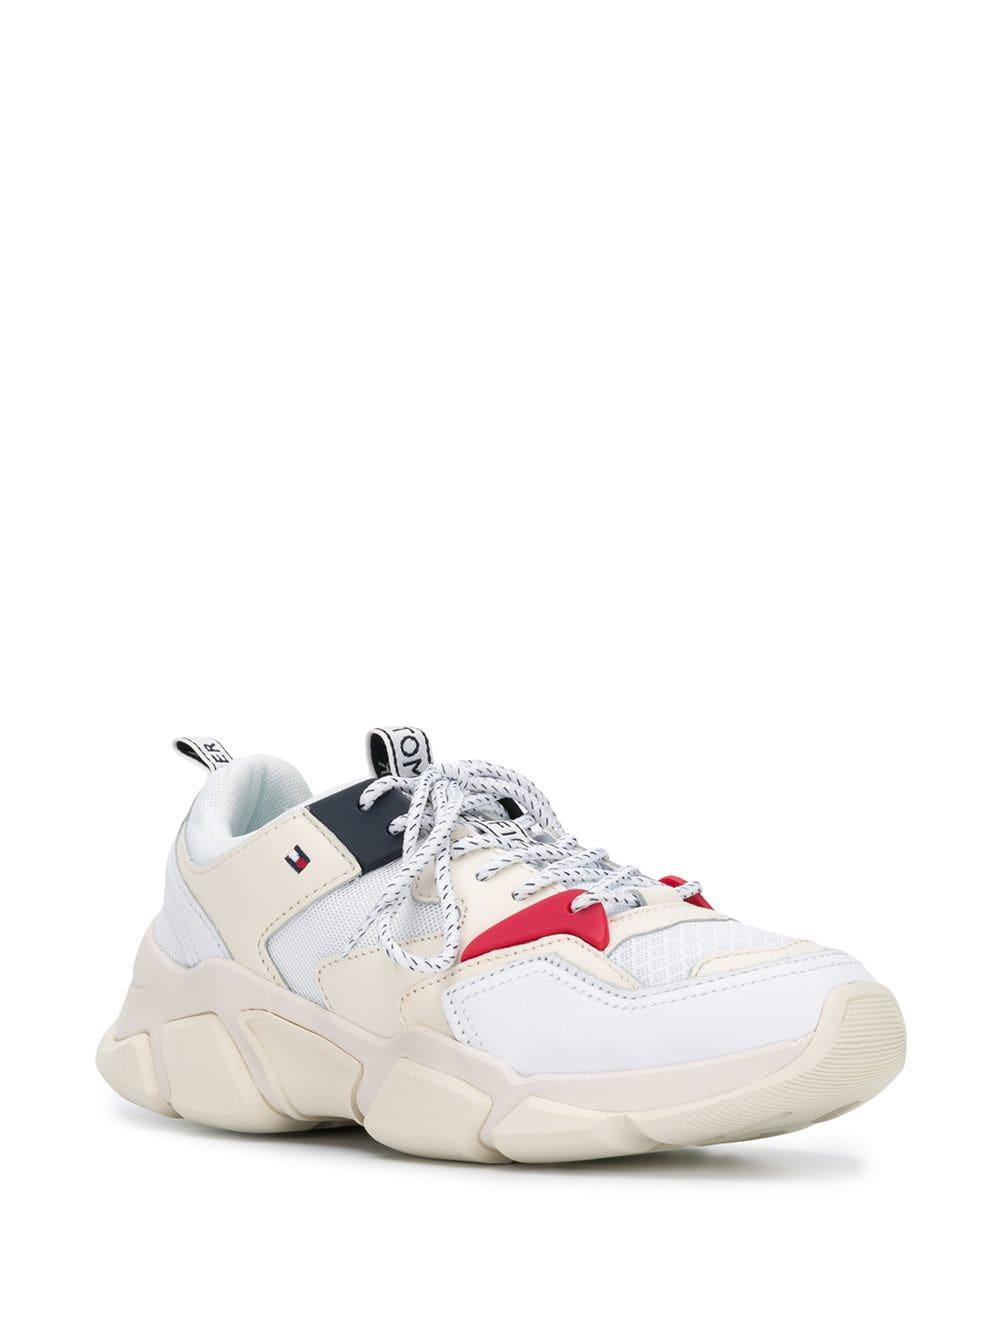 8691f0f4641b Lyst - Tommy Hilfiger Chunky Sneakers in White